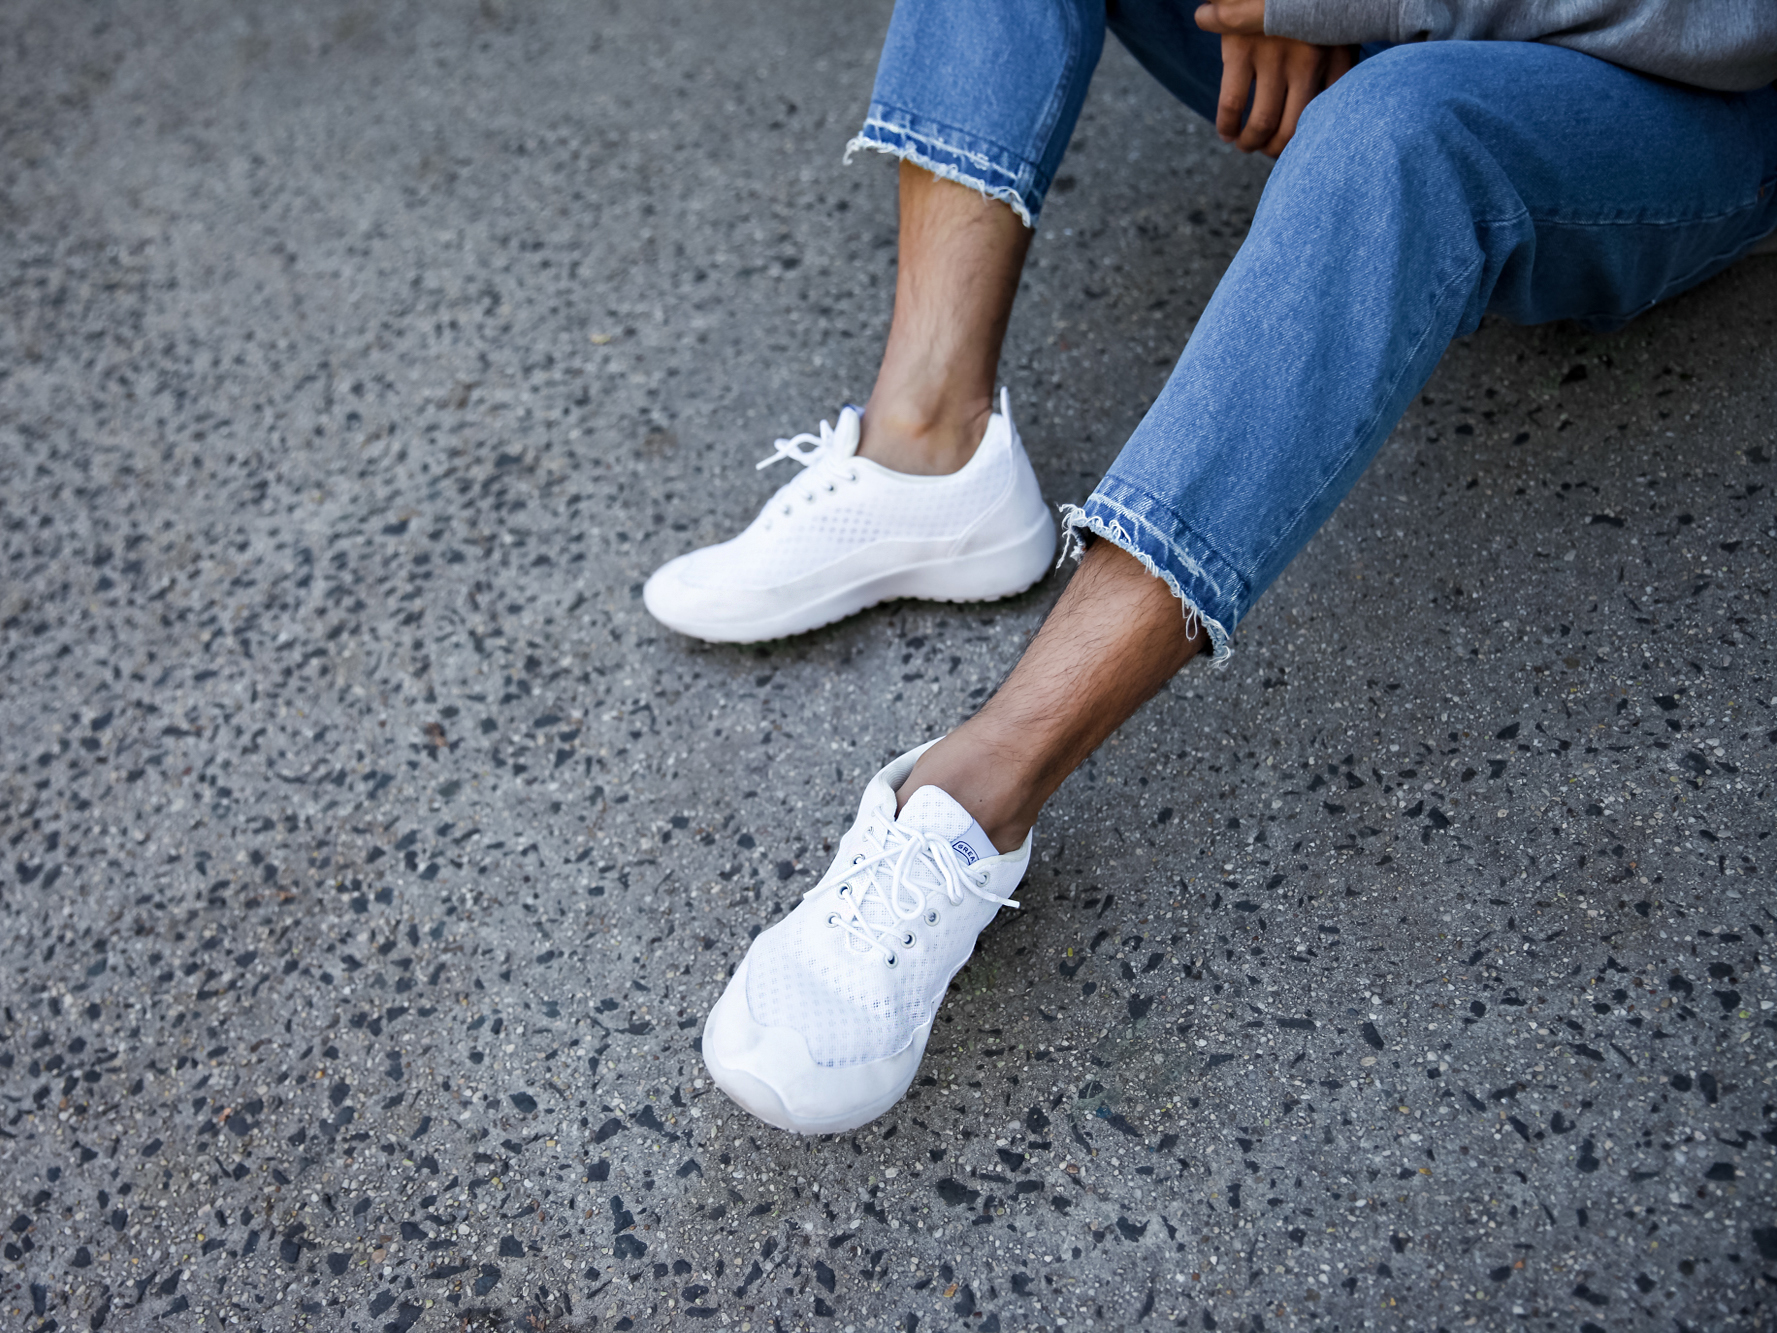 greats brand ghost white sneakers